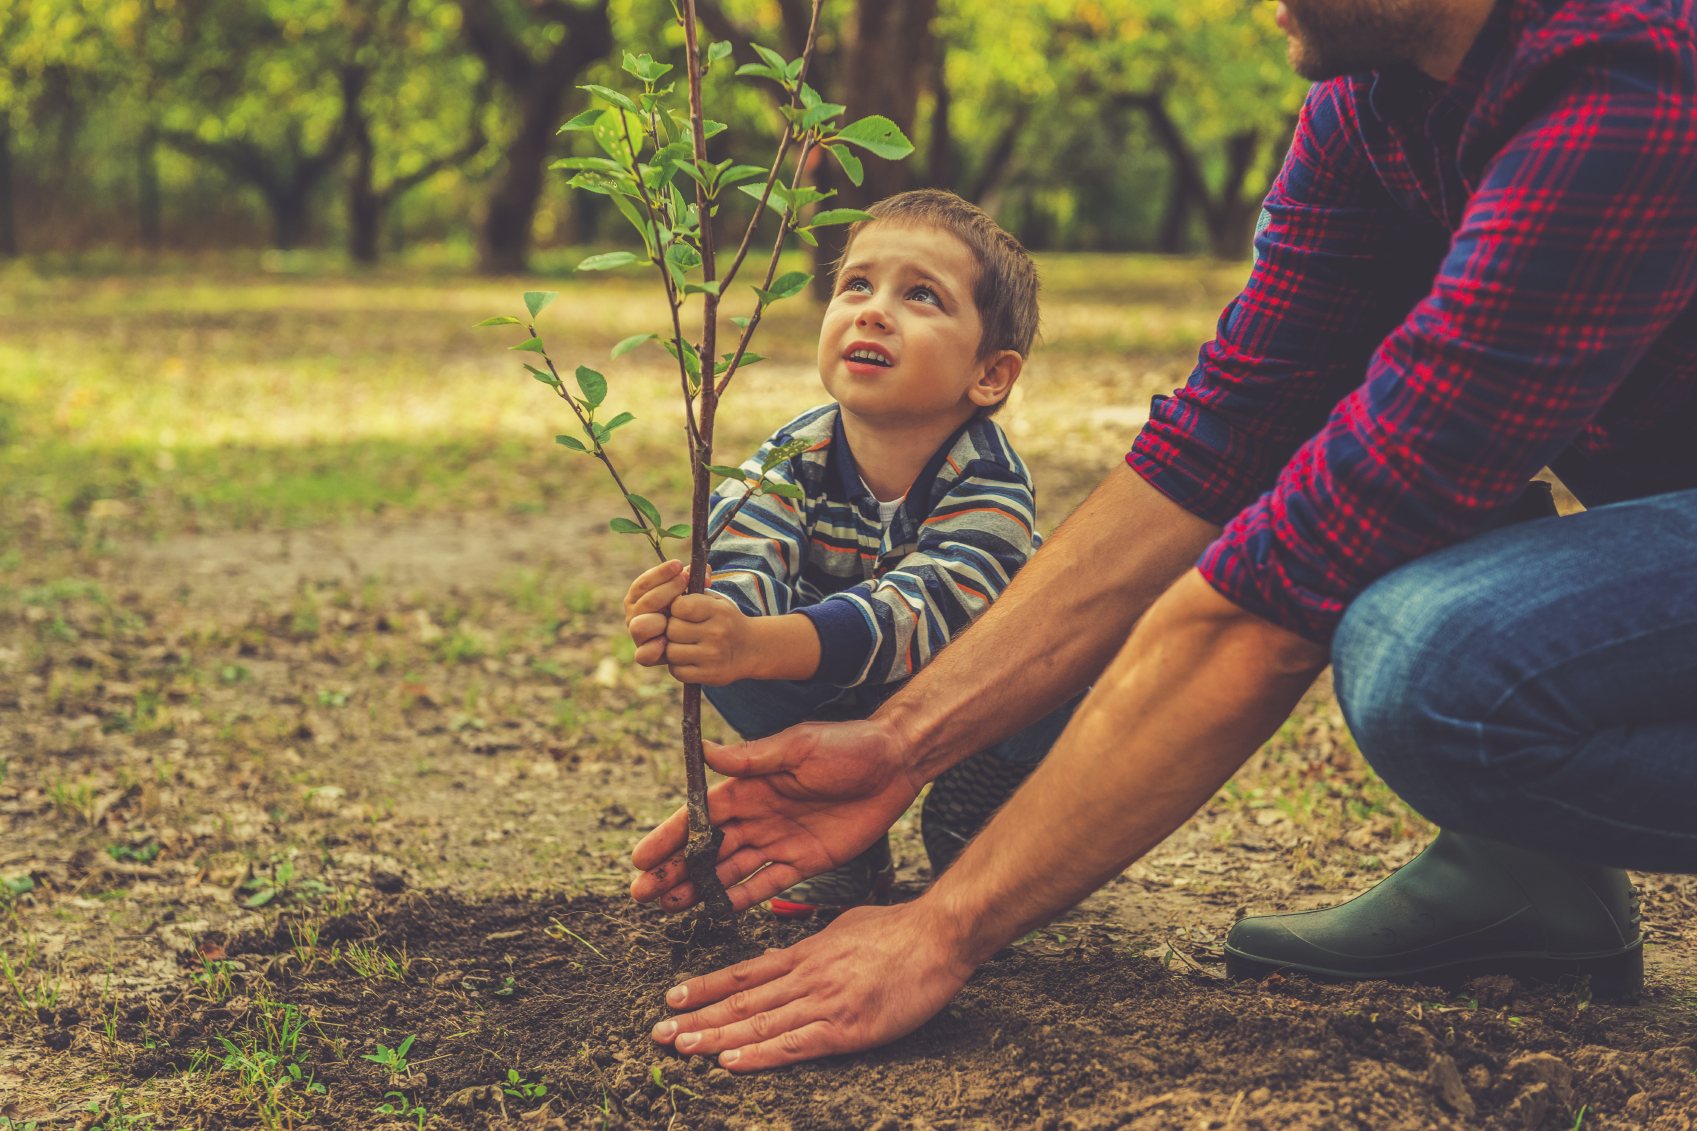 Child and Growing Tree.jpg